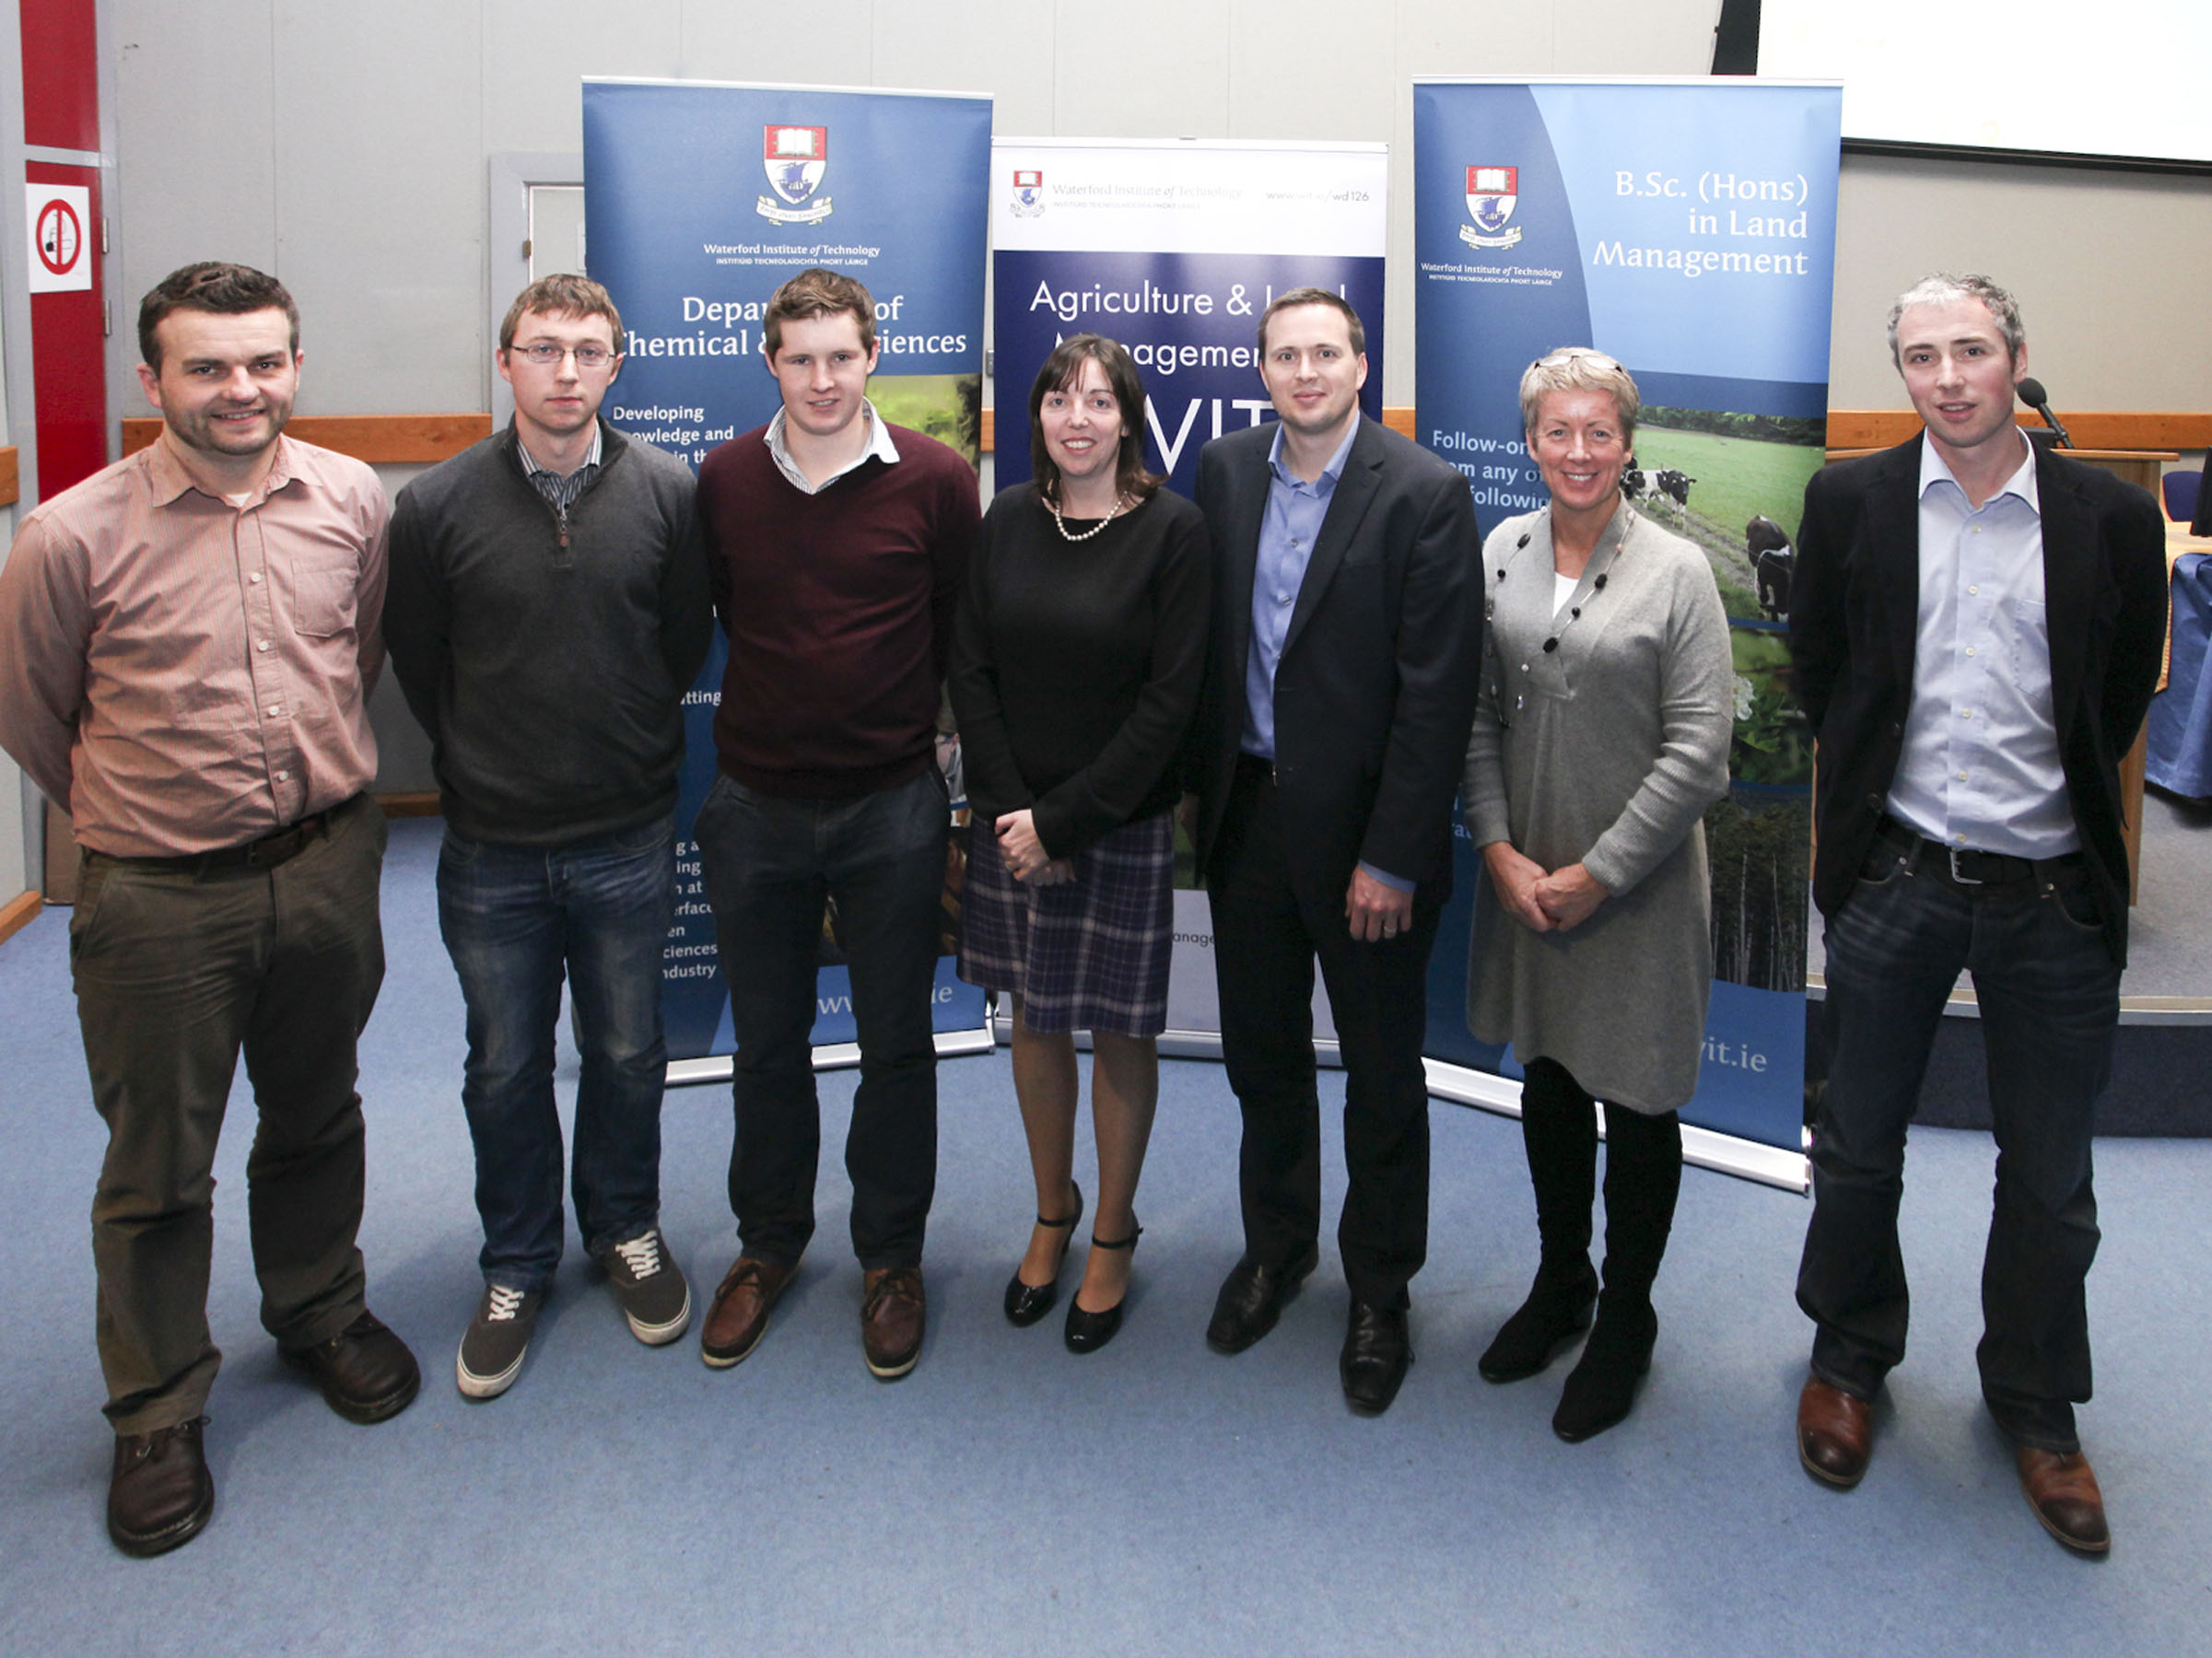 Dr Michael Breen, Eanna Galvin, James Cunningham, Dr Anne Marie Butler, Rob O'Keeffe, Angela Collins and Dr Tony Woodcock